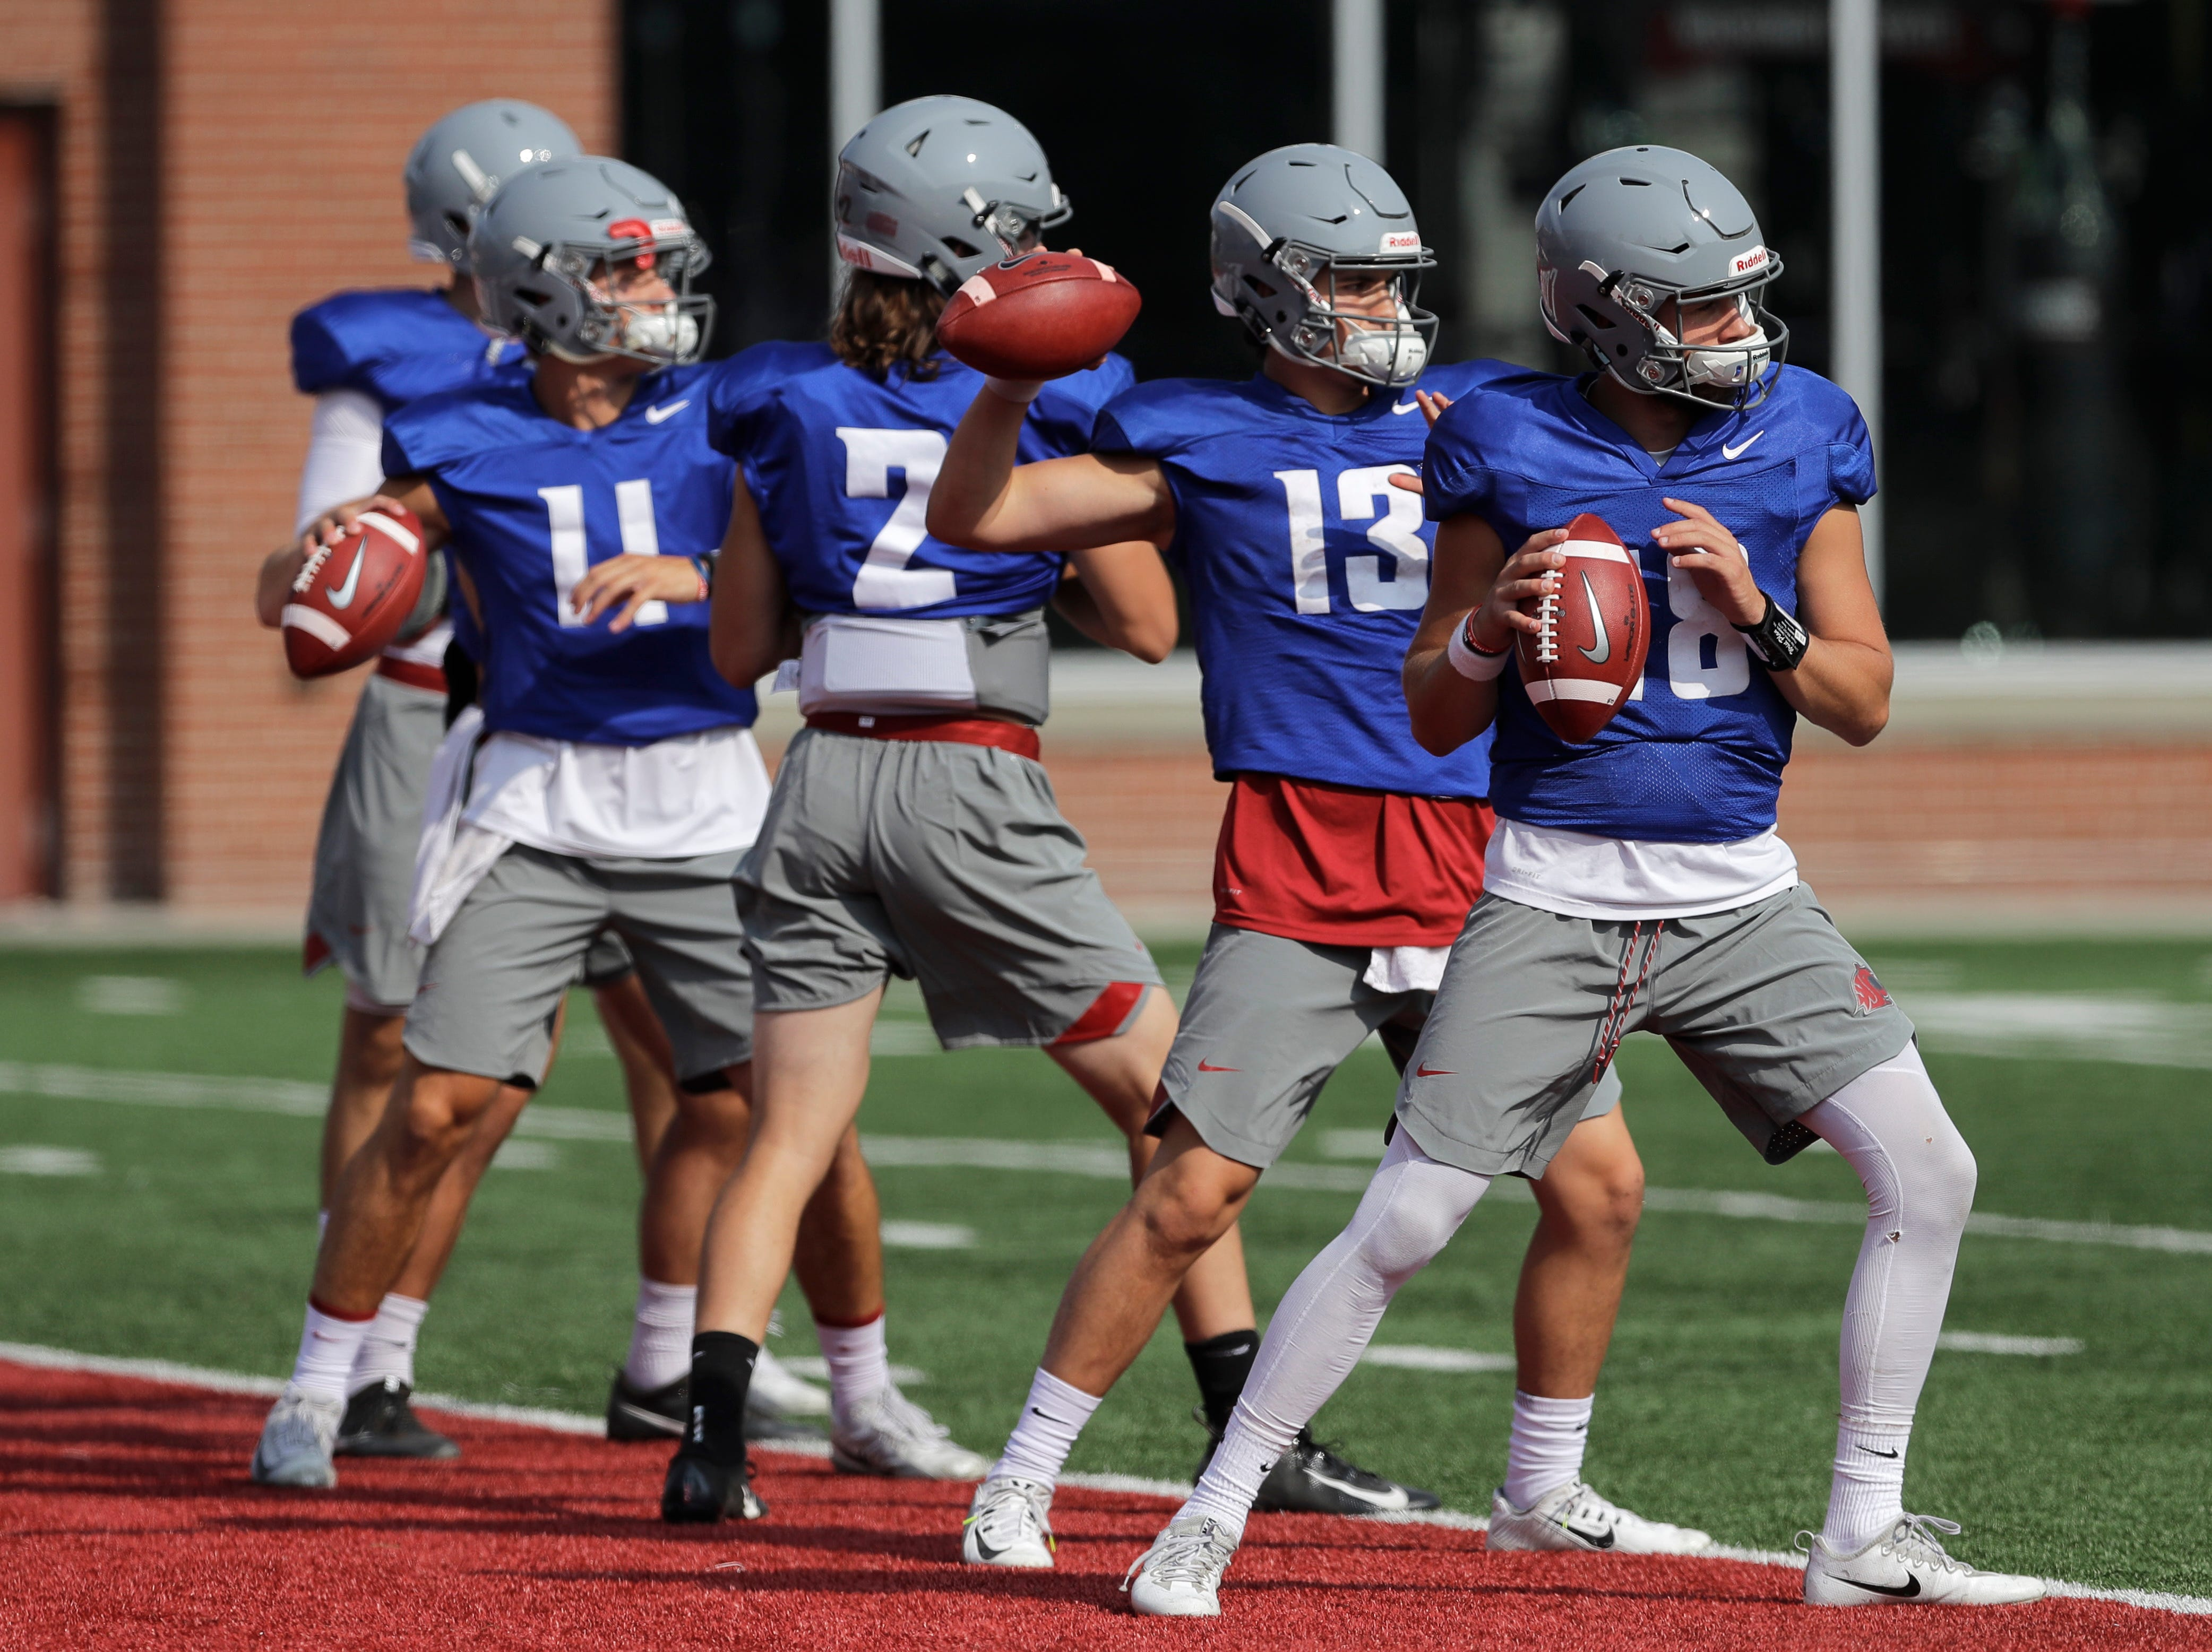 Washington State quarterbacks, including Anthony Gordon, right, and Connor Neville (13) during Thursday's practice. Gordon is one of three quarterbacks competing for the starting job.